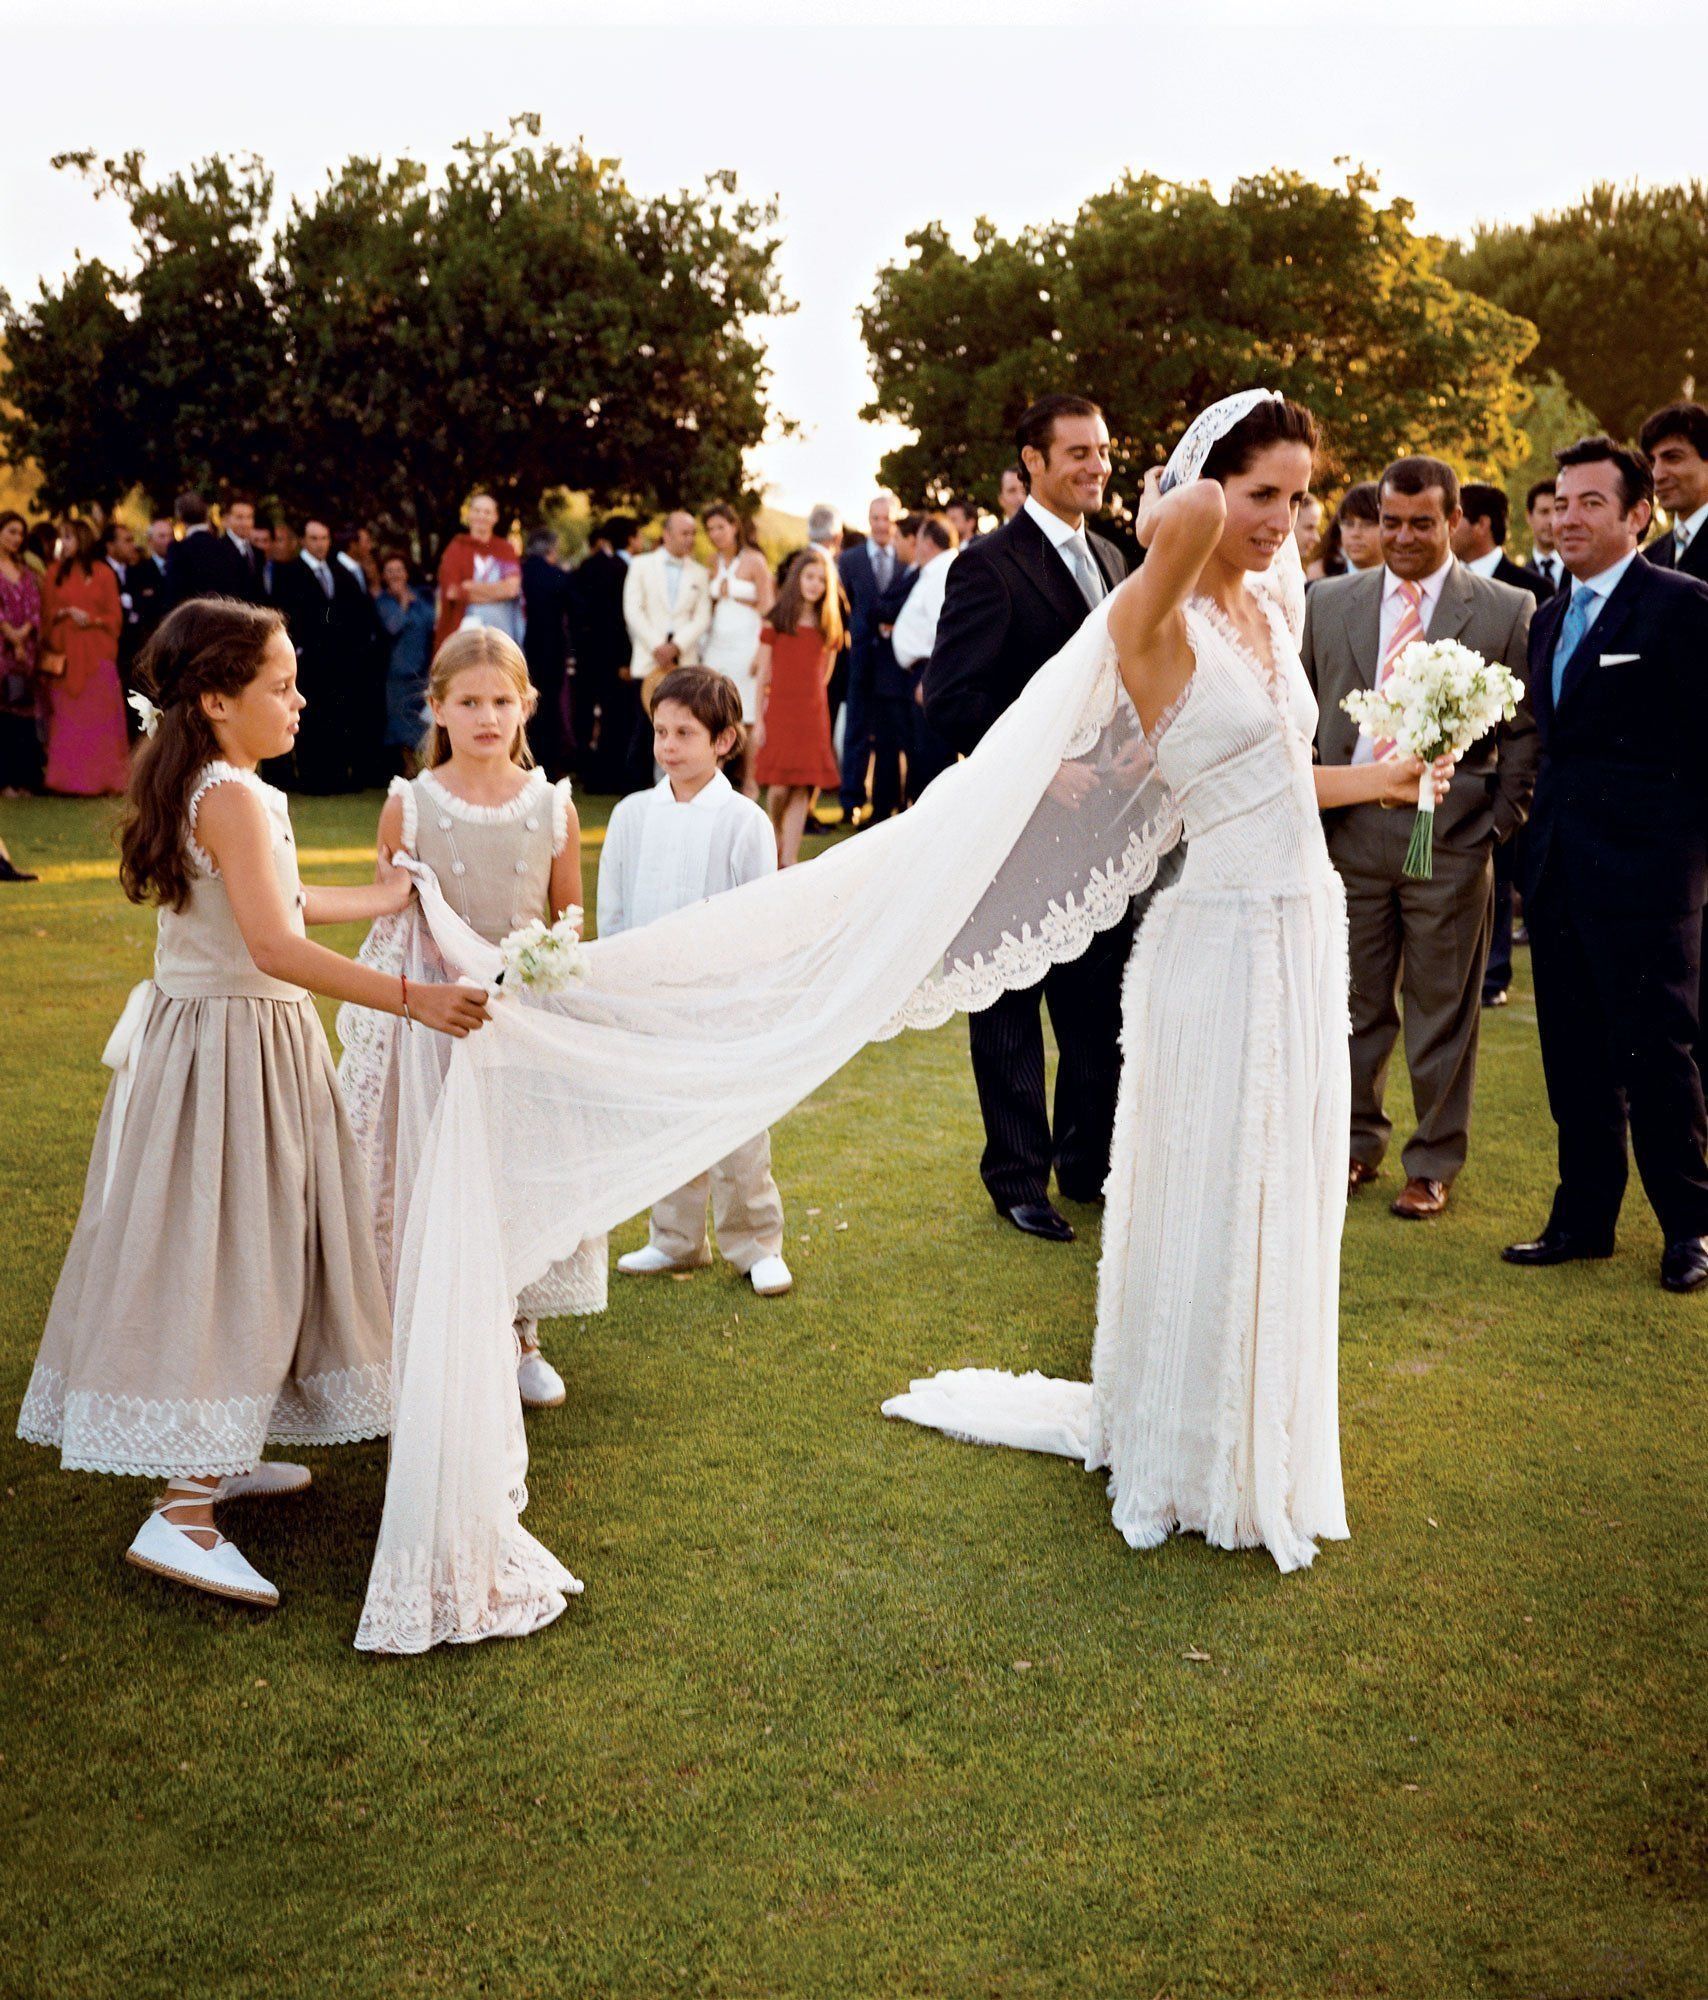 The Most Beautiful Social Weddings Of All Time